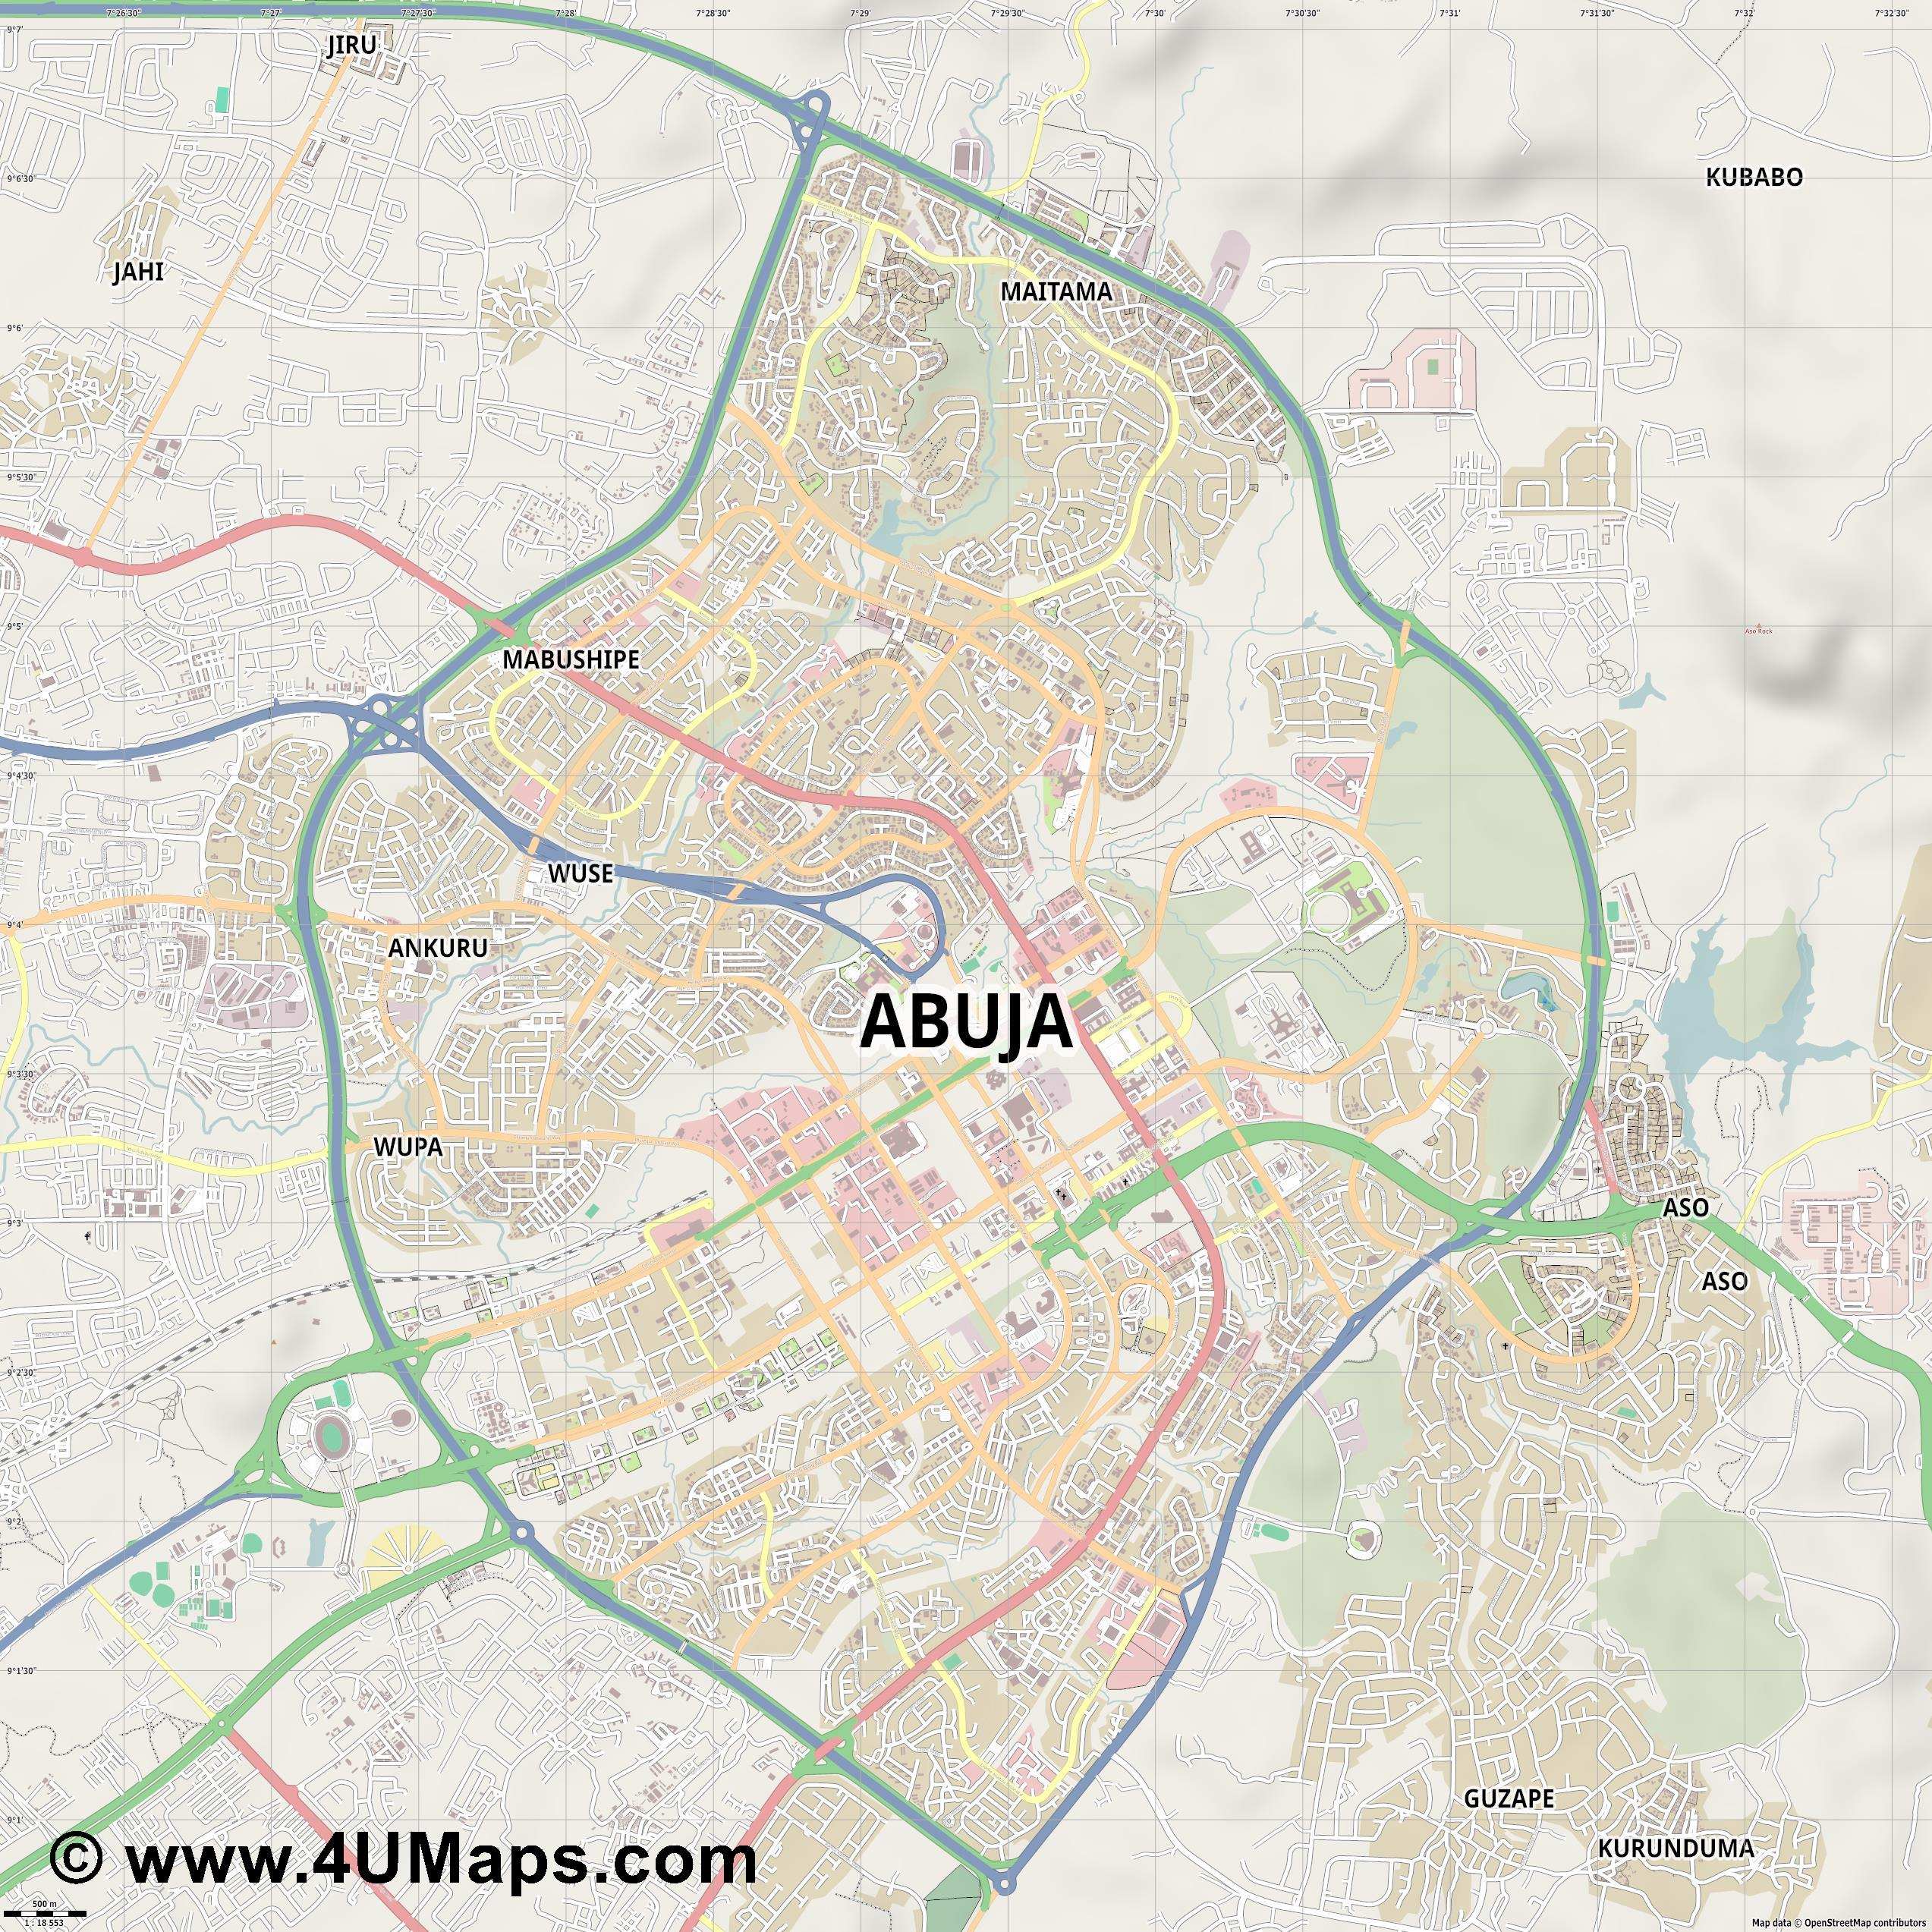 Abuja Abuya  jpg ultra high detail preview vector city map